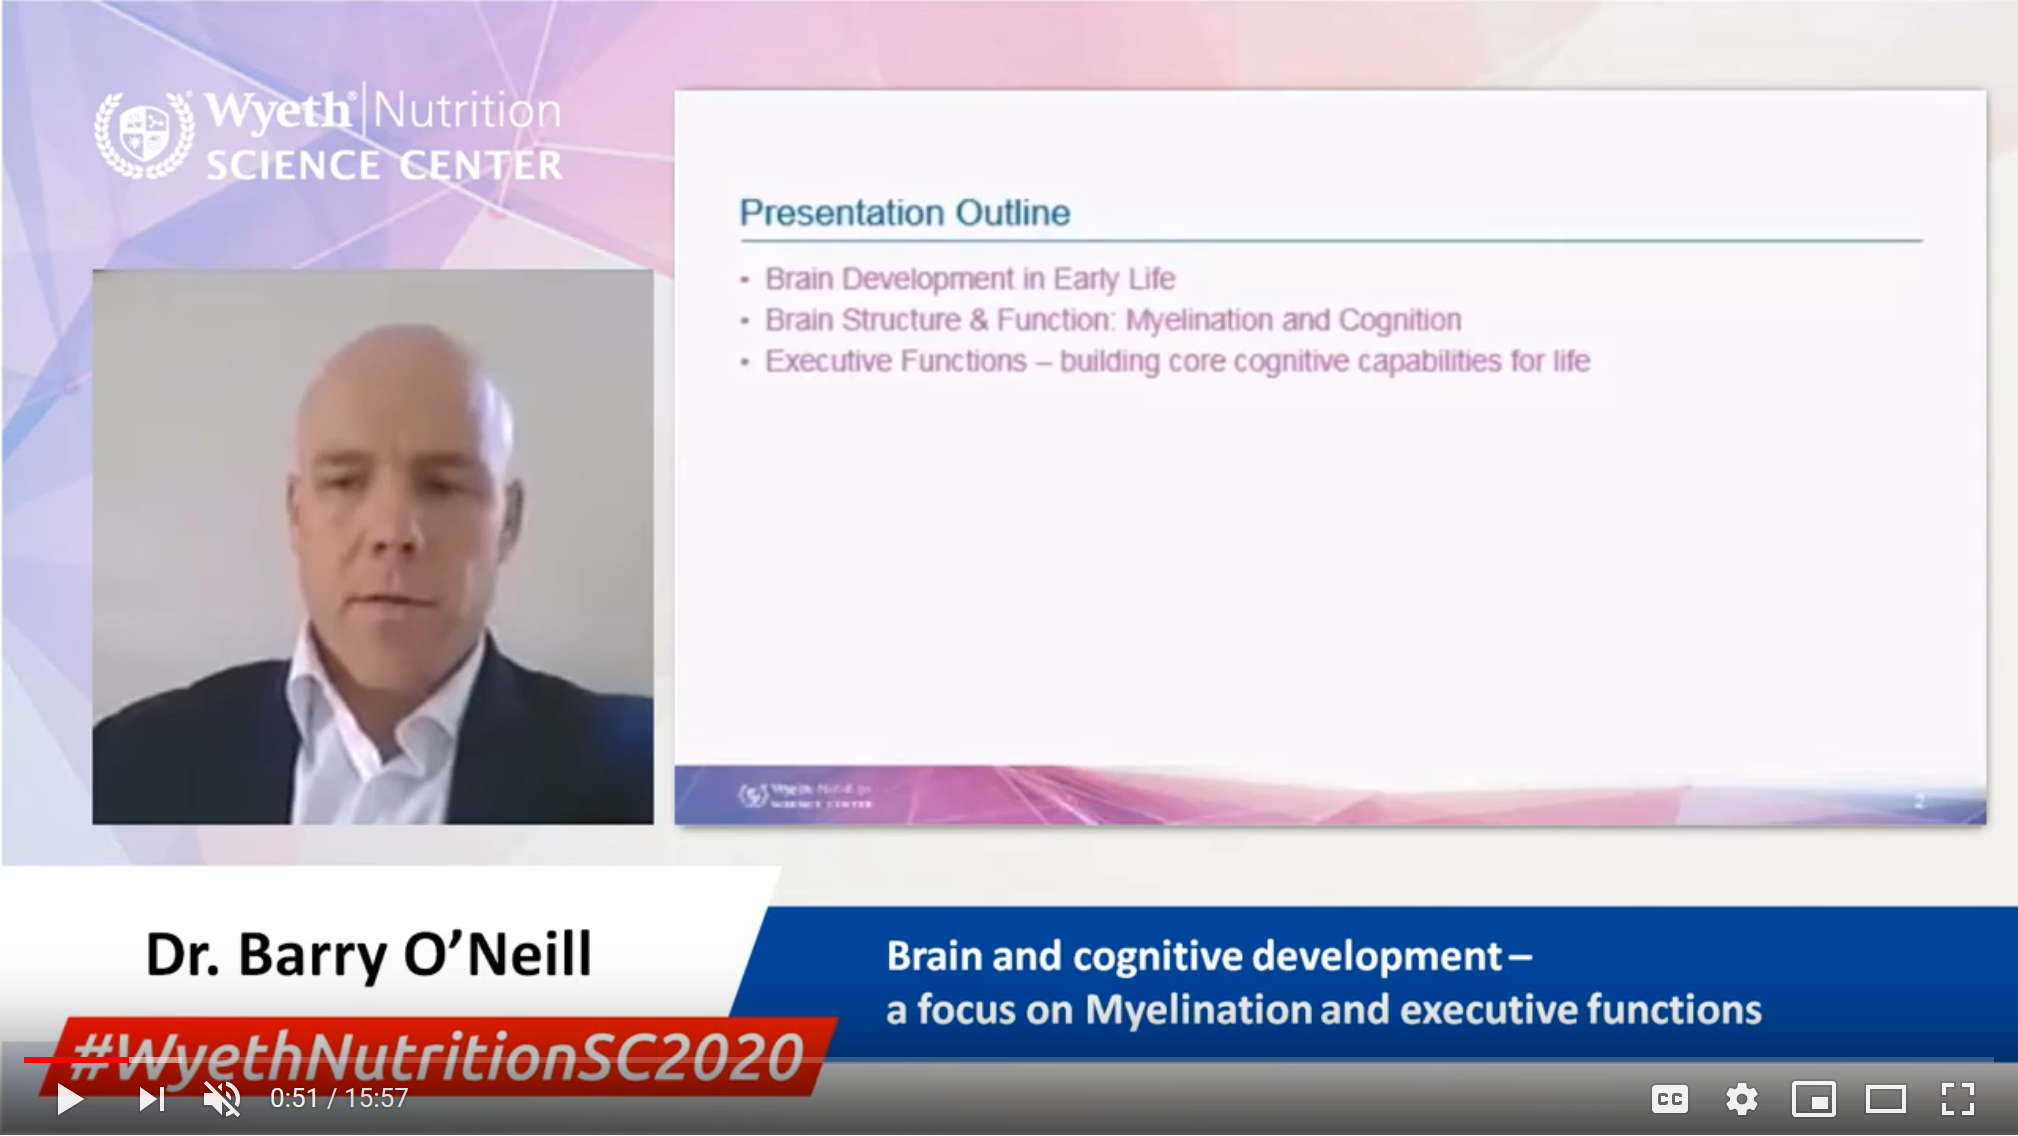 Brain and cognitive development – a focus on myelination and executive functions - Dr. Barry O'Neill